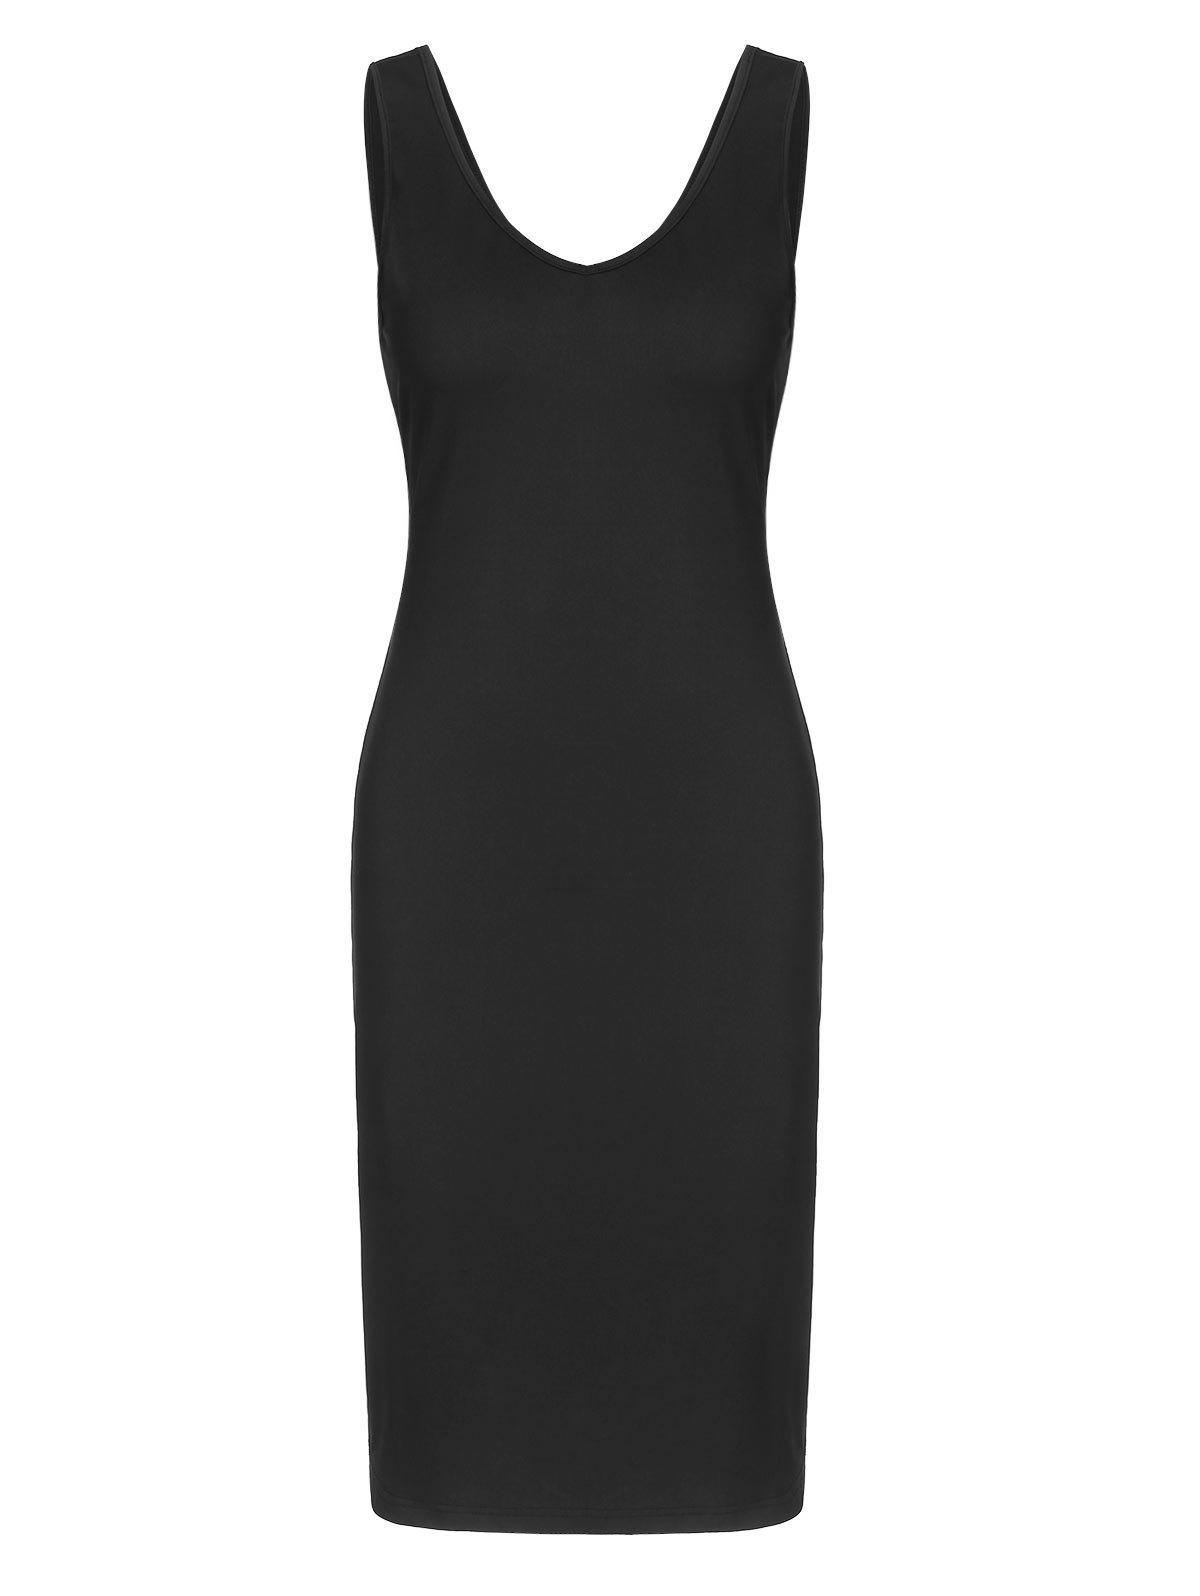 Sleeveless Crossover Cut Out Sheath Dress - BLACK XL